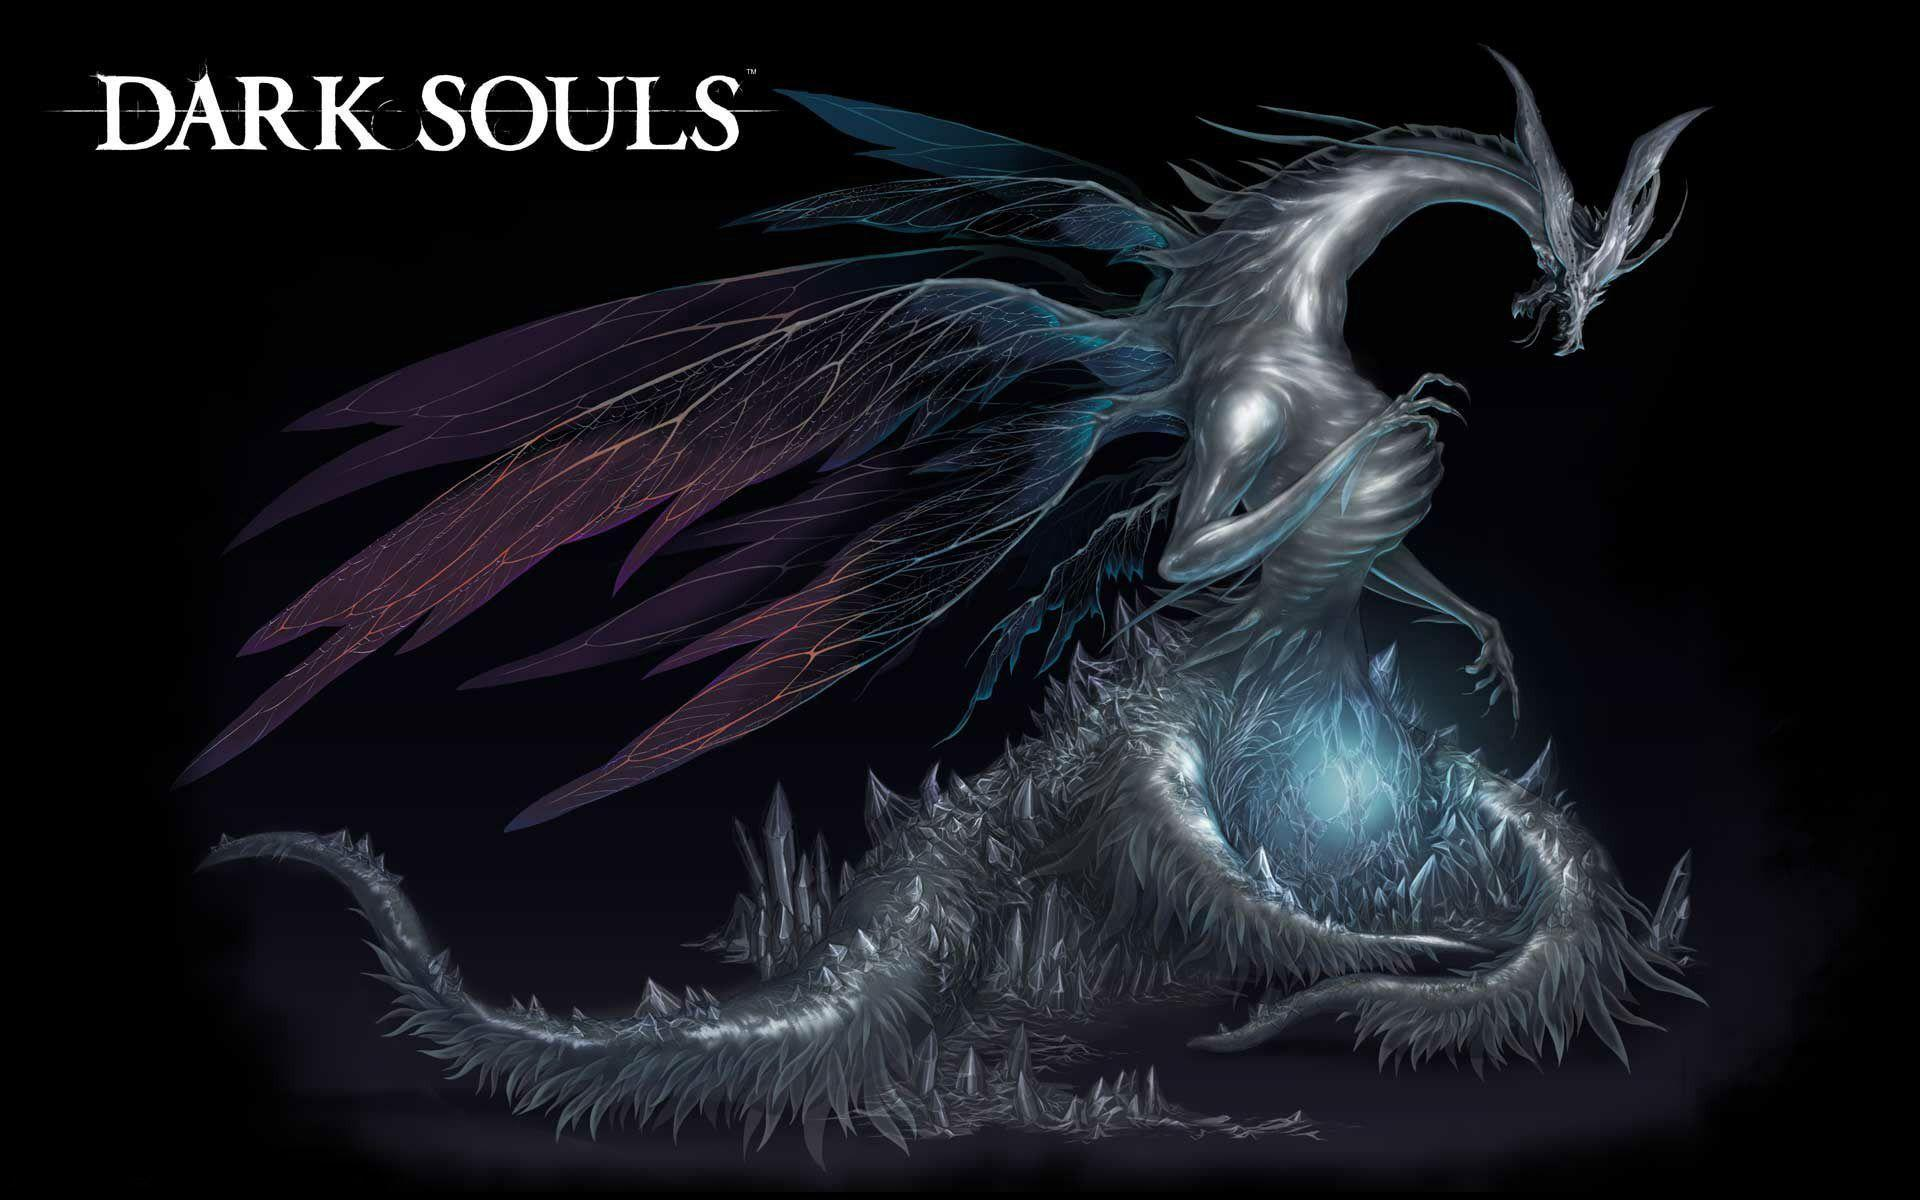 dark souls 3 wallpapers, dark souls 1920x1080 wallpaper